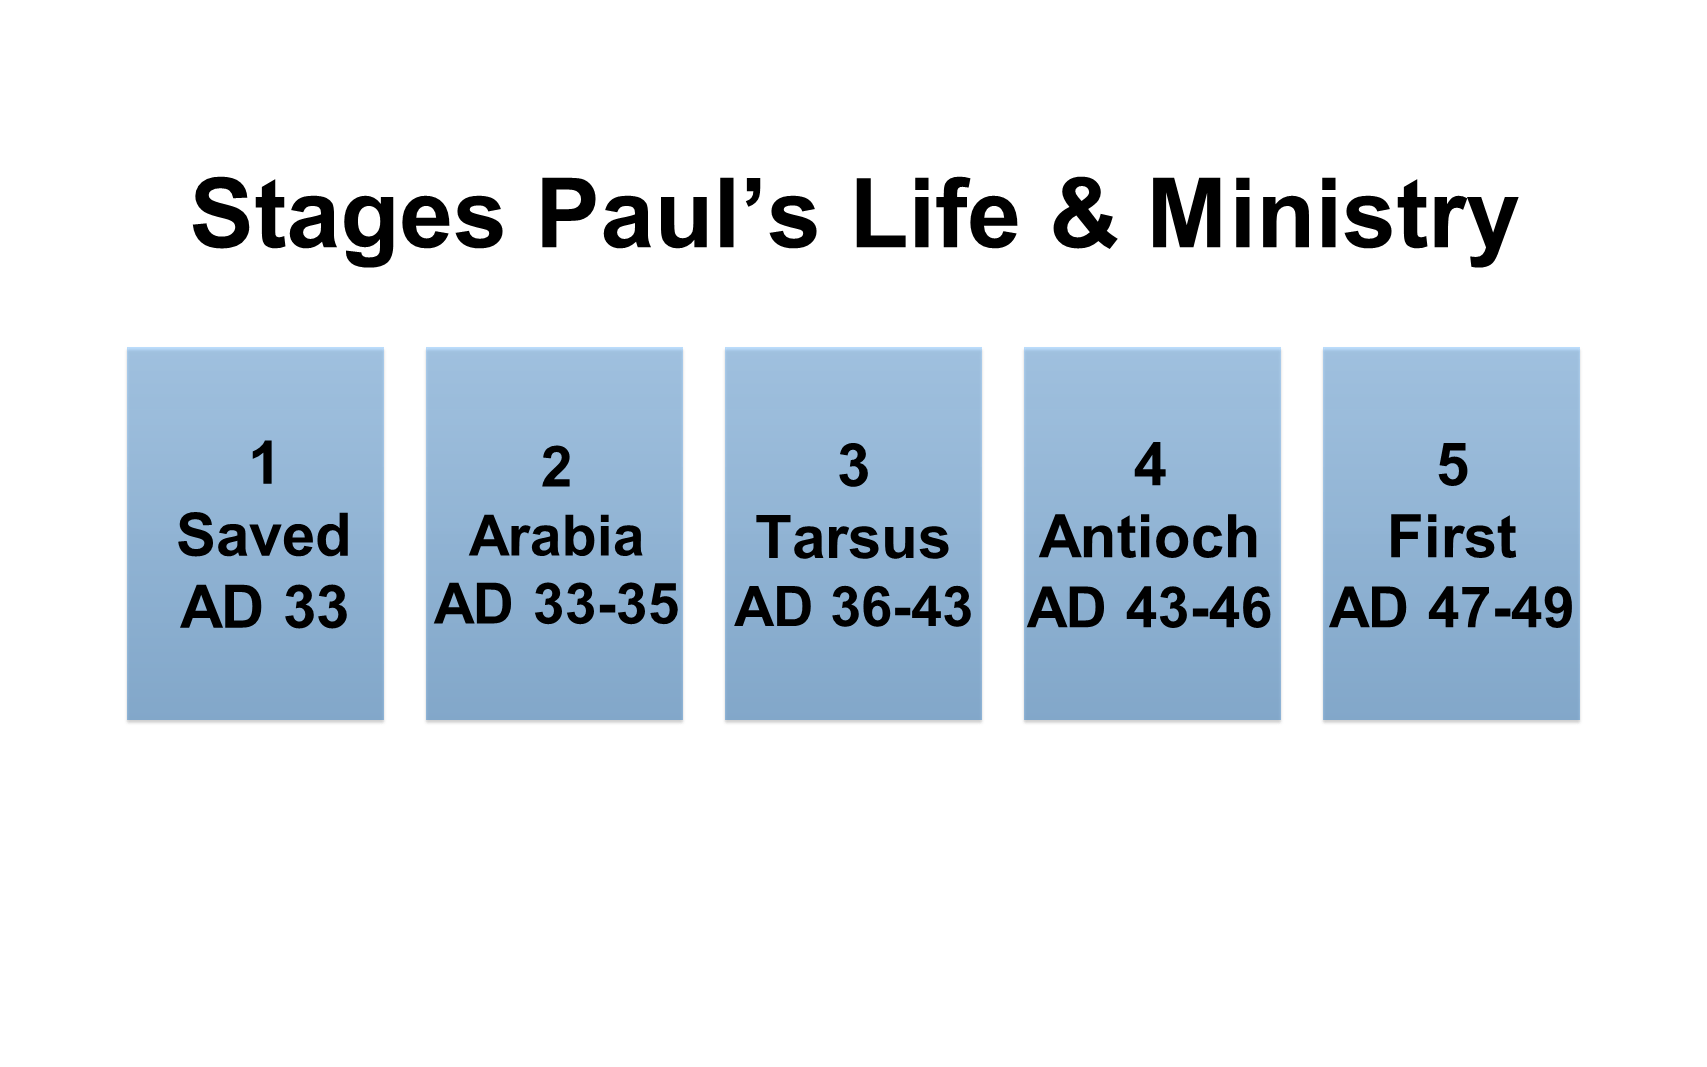 ESH-23 - The Discipline Of Disciple-Making - Paul - Used By God To Change The World (26)